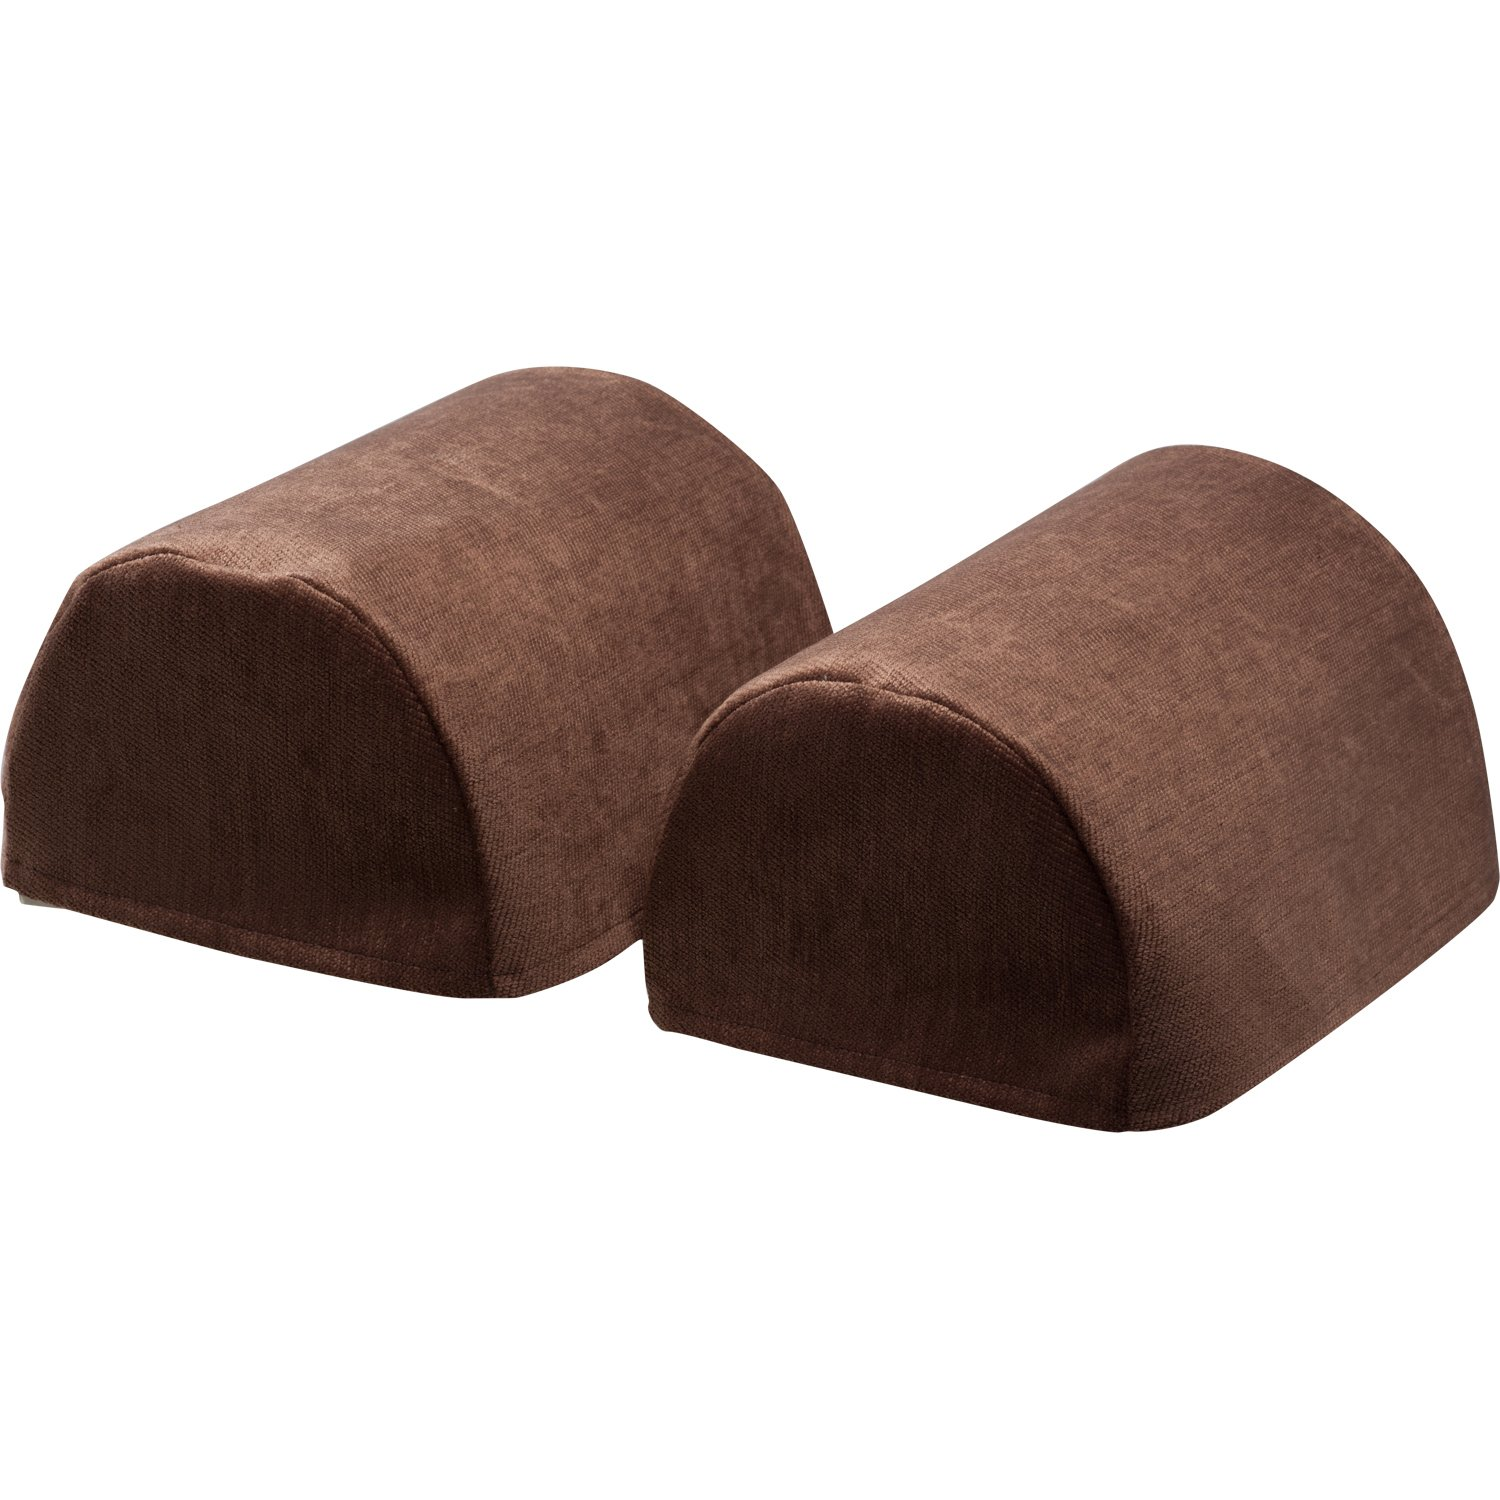 Classic Home Store Chenille Pair of Jumbo Round Arm Caps Plain Soft Touch Sofa Furniture Cover Antimacassar (Brown)